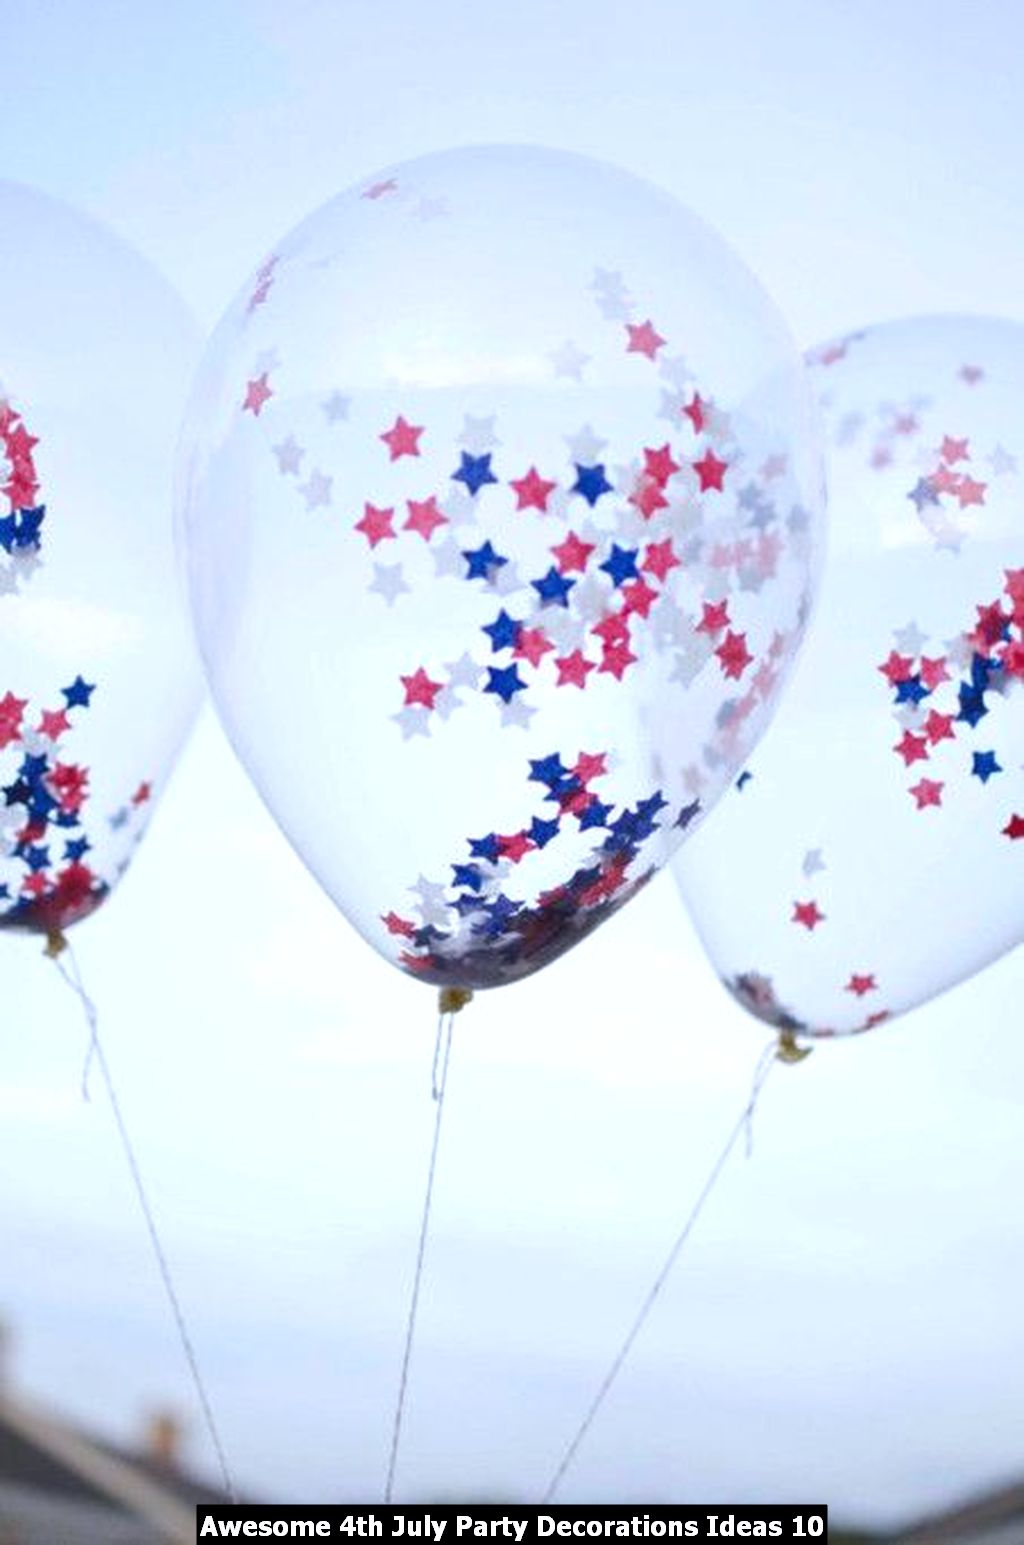 Awesome 4th July Party Decorations Ideas 10